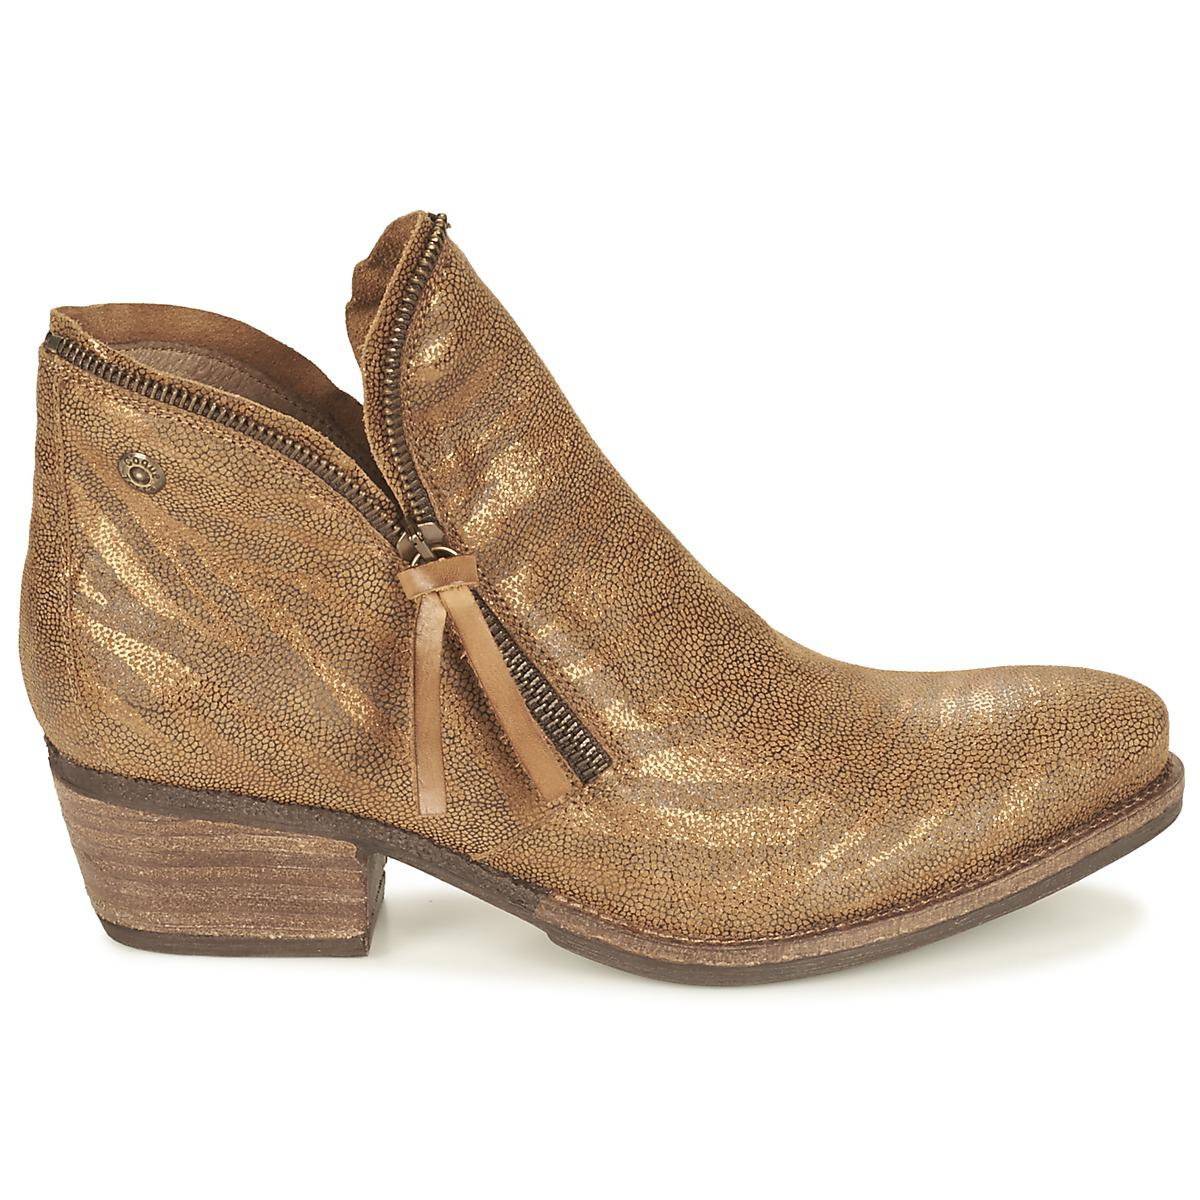 Coqueterra Leather Lizzy Women's Mid Boots In Gold in Metallic